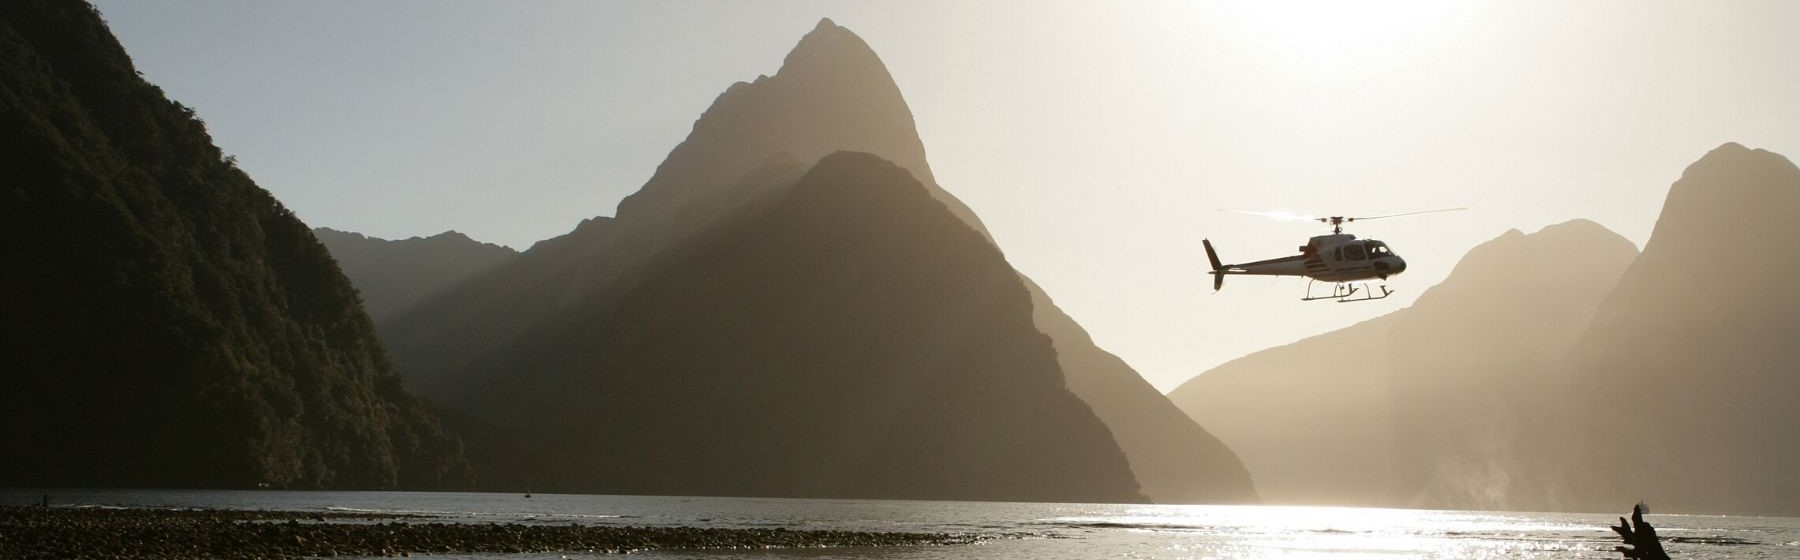 A helicopter flies above the Milford Sound near sunset between mountain peaks.